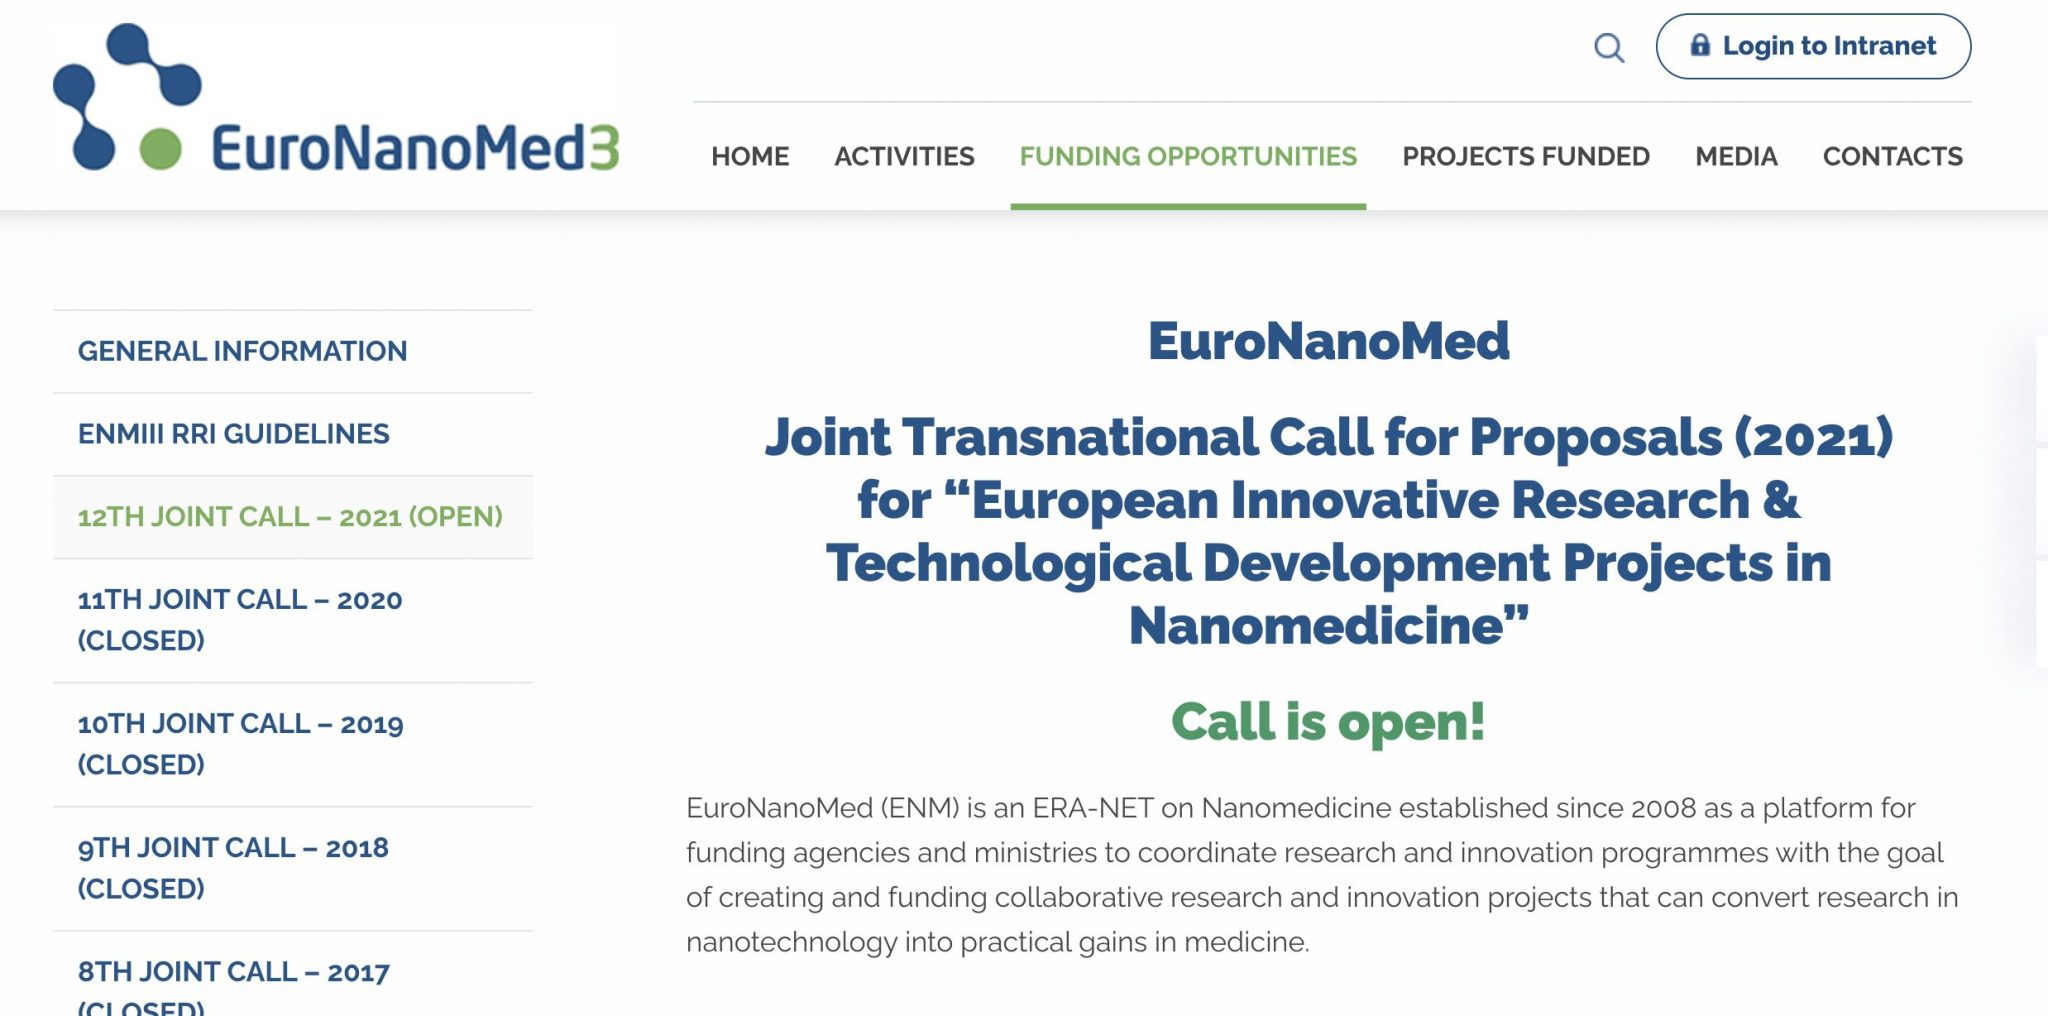 "OPEN! EuroNanoMed Joint Transnational Call for Proposals (2021) for ""European Innovative Research & Technological Development Projects in Nanomedicine"""